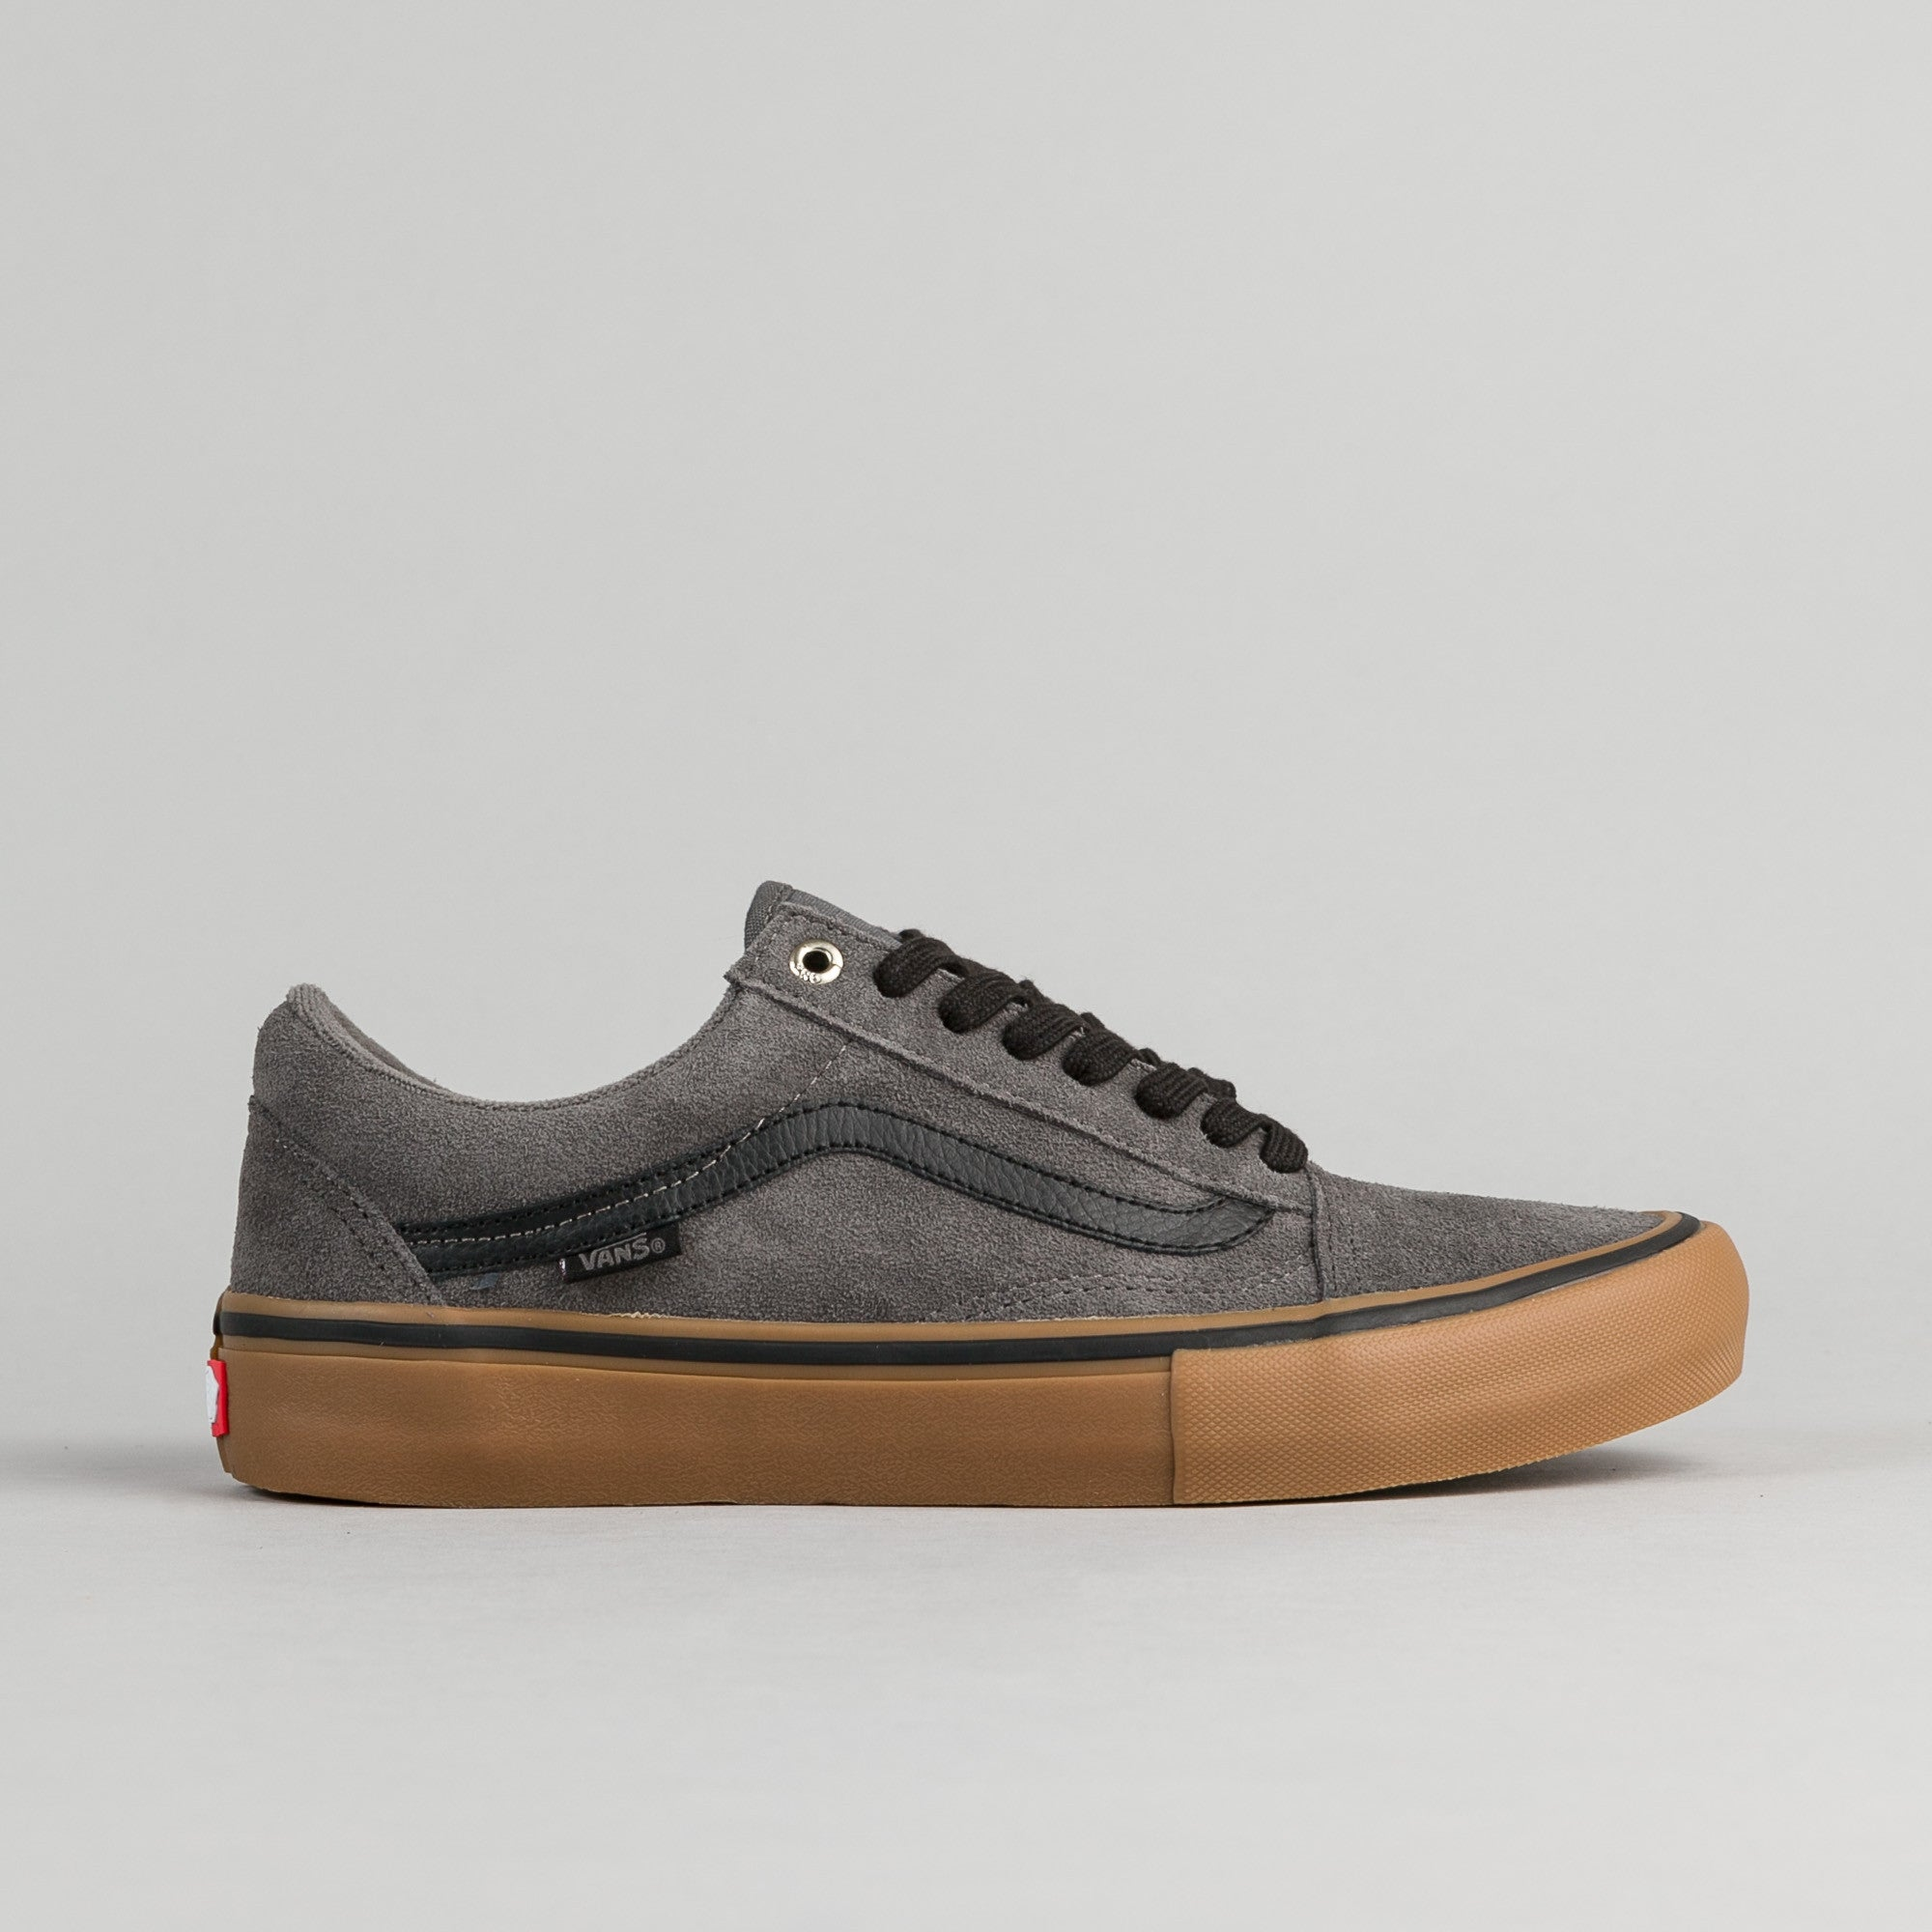 1791e52f8c0 Vans Old Skool Pro Shoes - Grey   Black   Gum